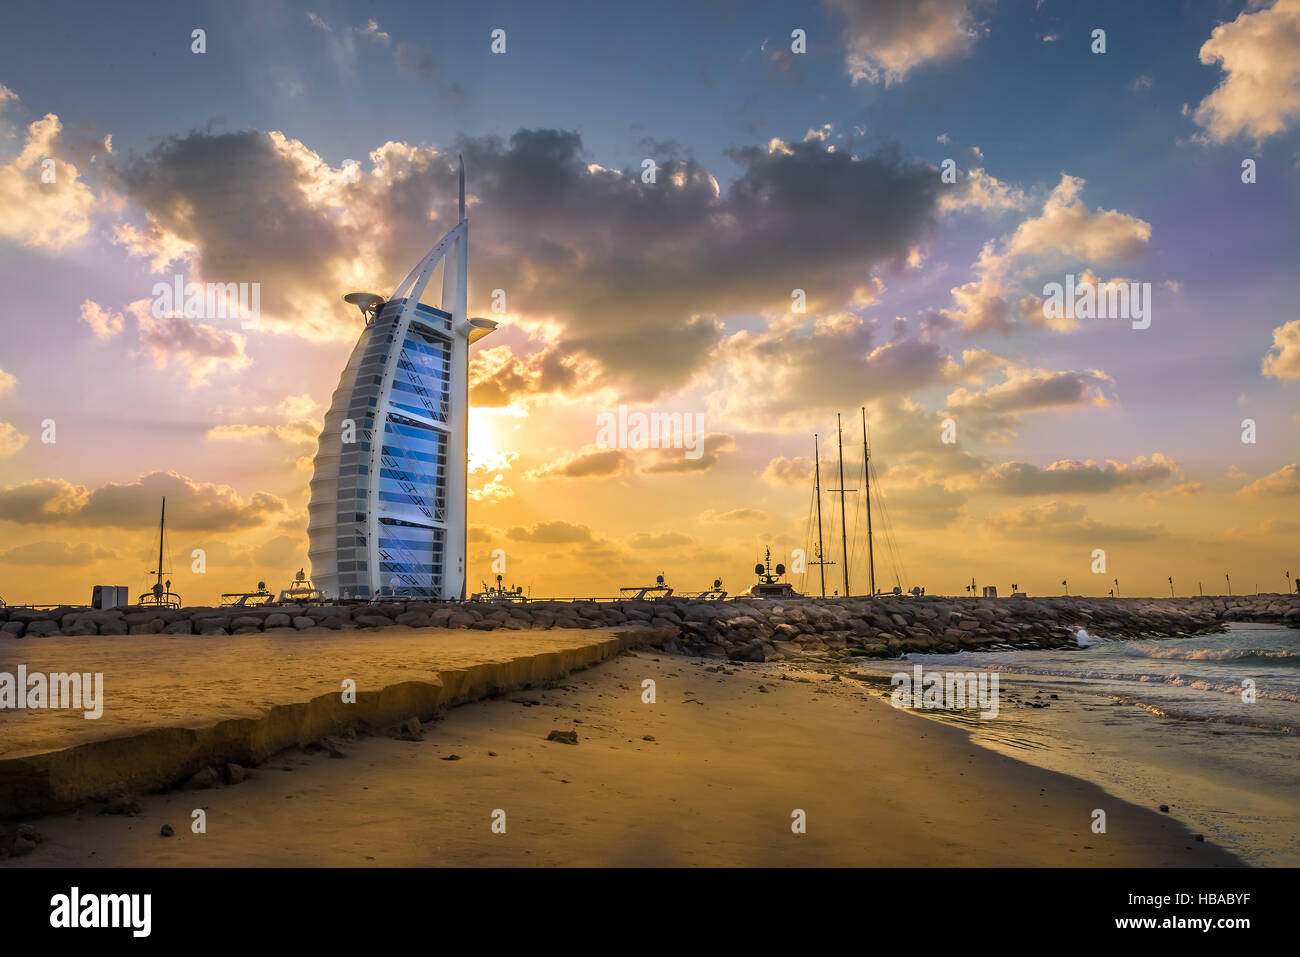 Burj Al Arab and marina at the sunset, Dubai - Stock Image